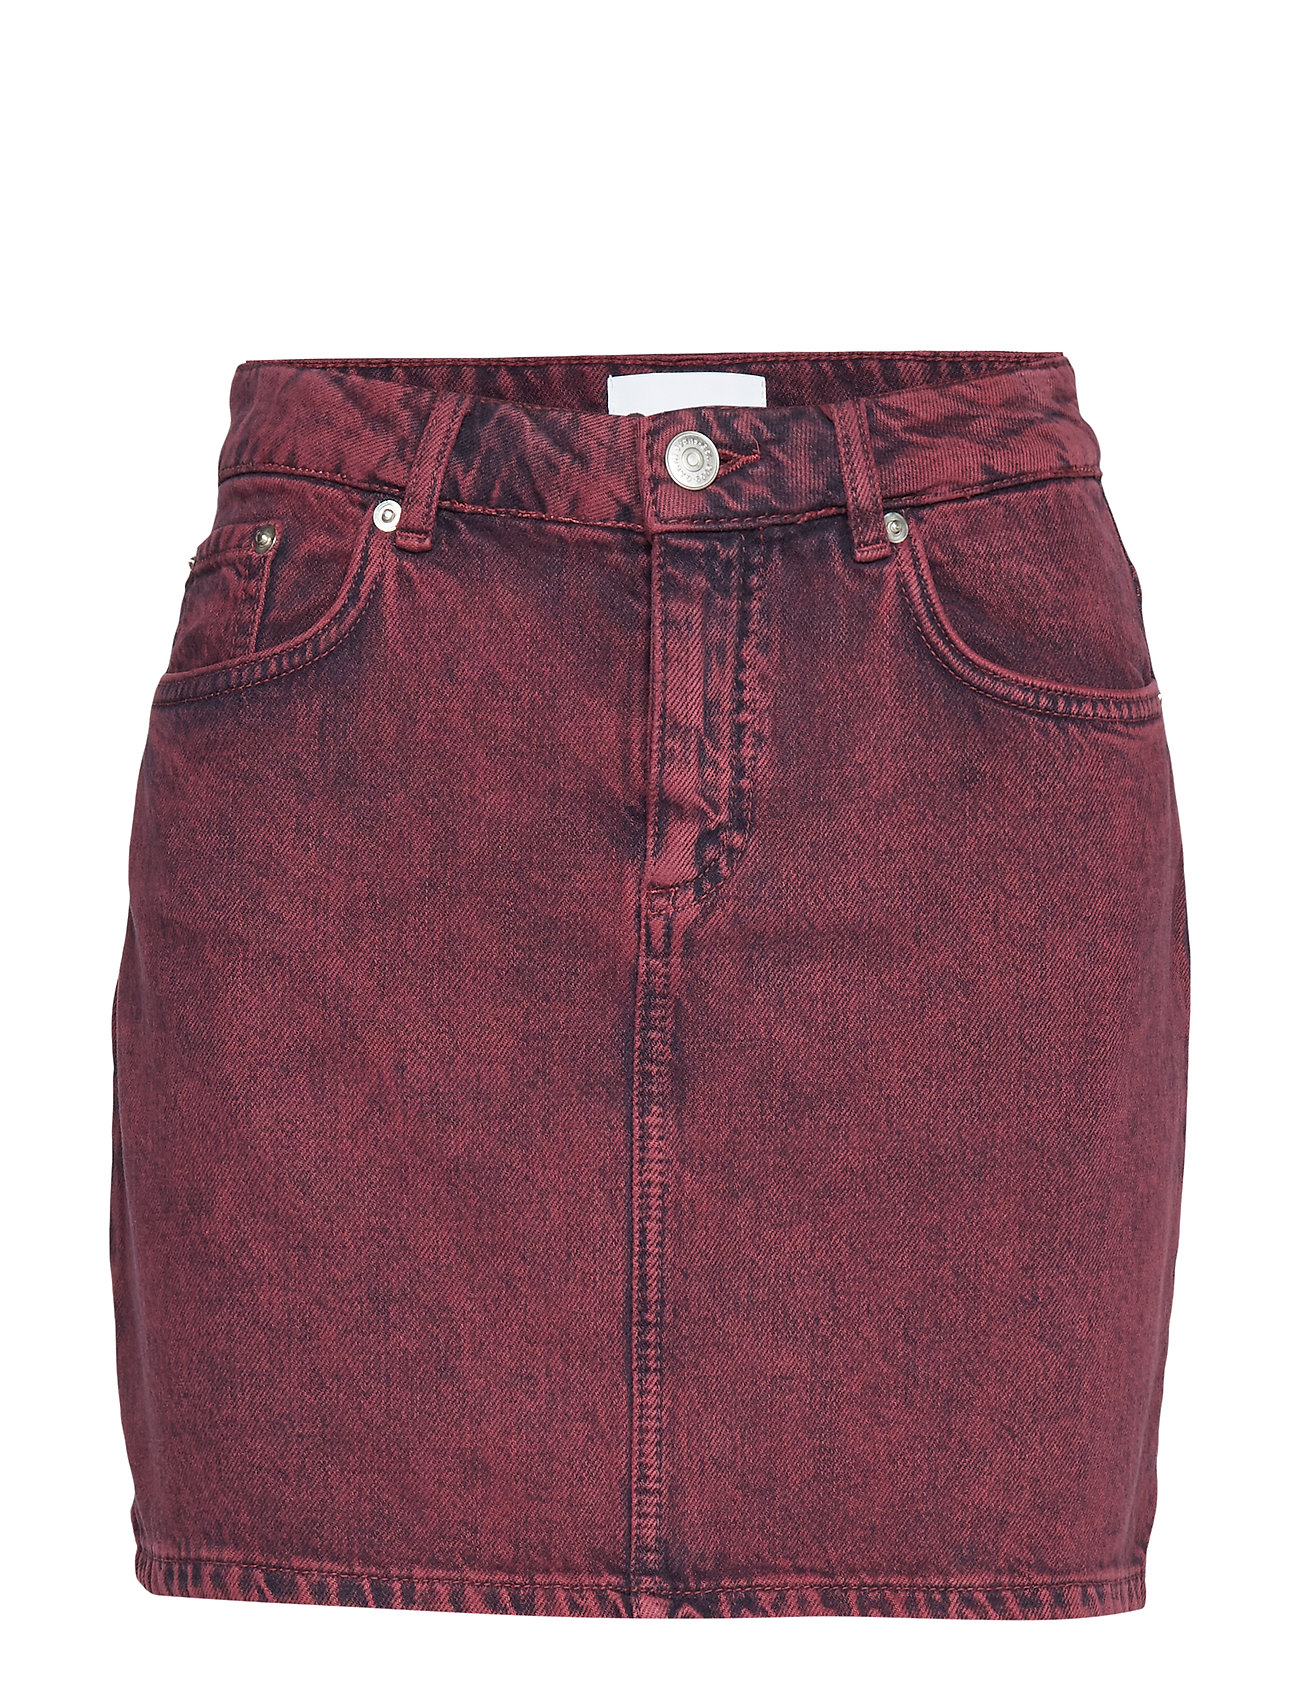 Ganni Washed Denim - PORT ROYALE